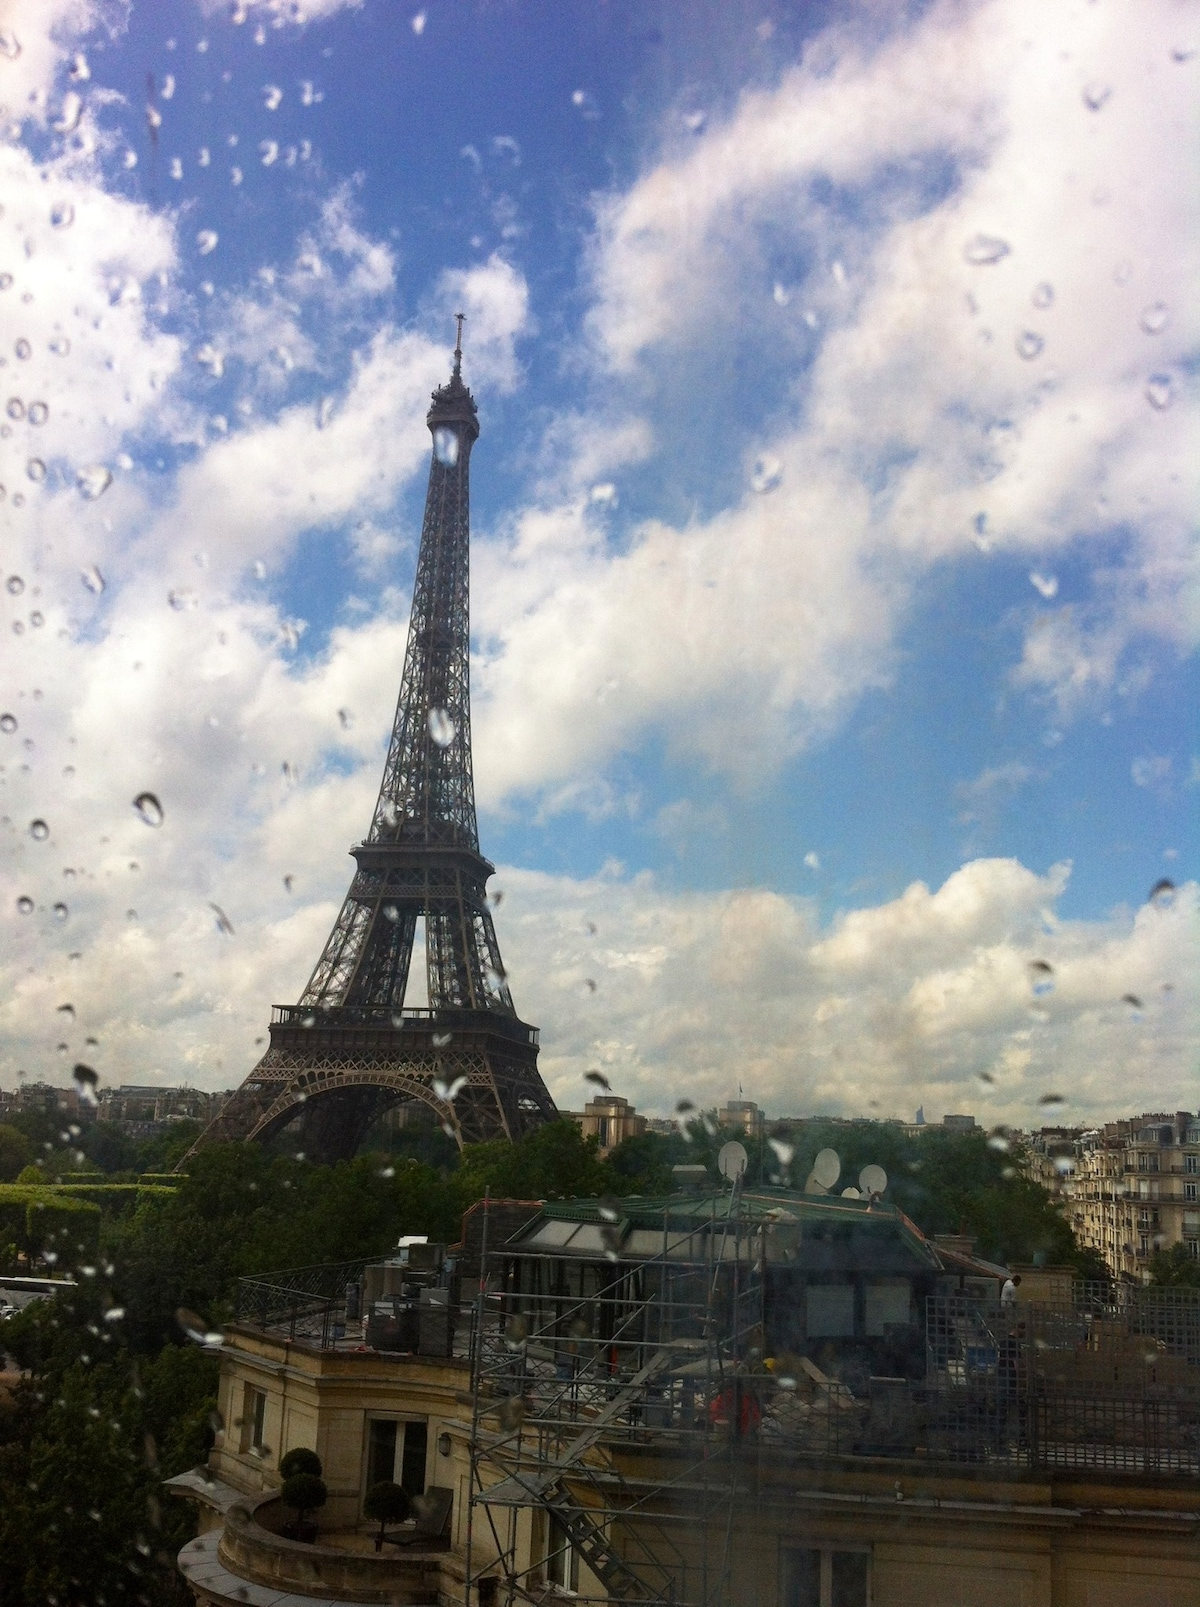 View from the window - Paris